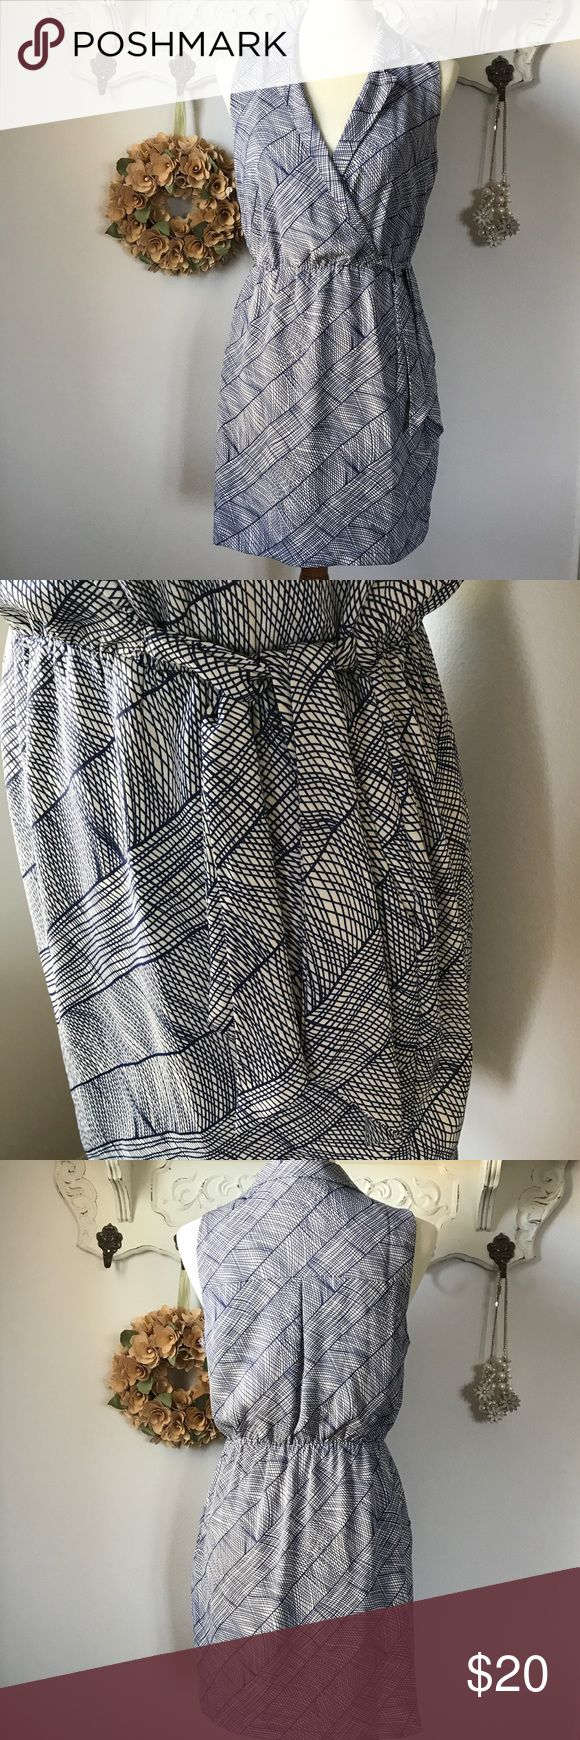 Forever 21 patterned dress Forever 21 v-neck pull-over dress. Ties at waist with pockets. 100 polyester. Fully lined. Forever 21 Dresses Midi